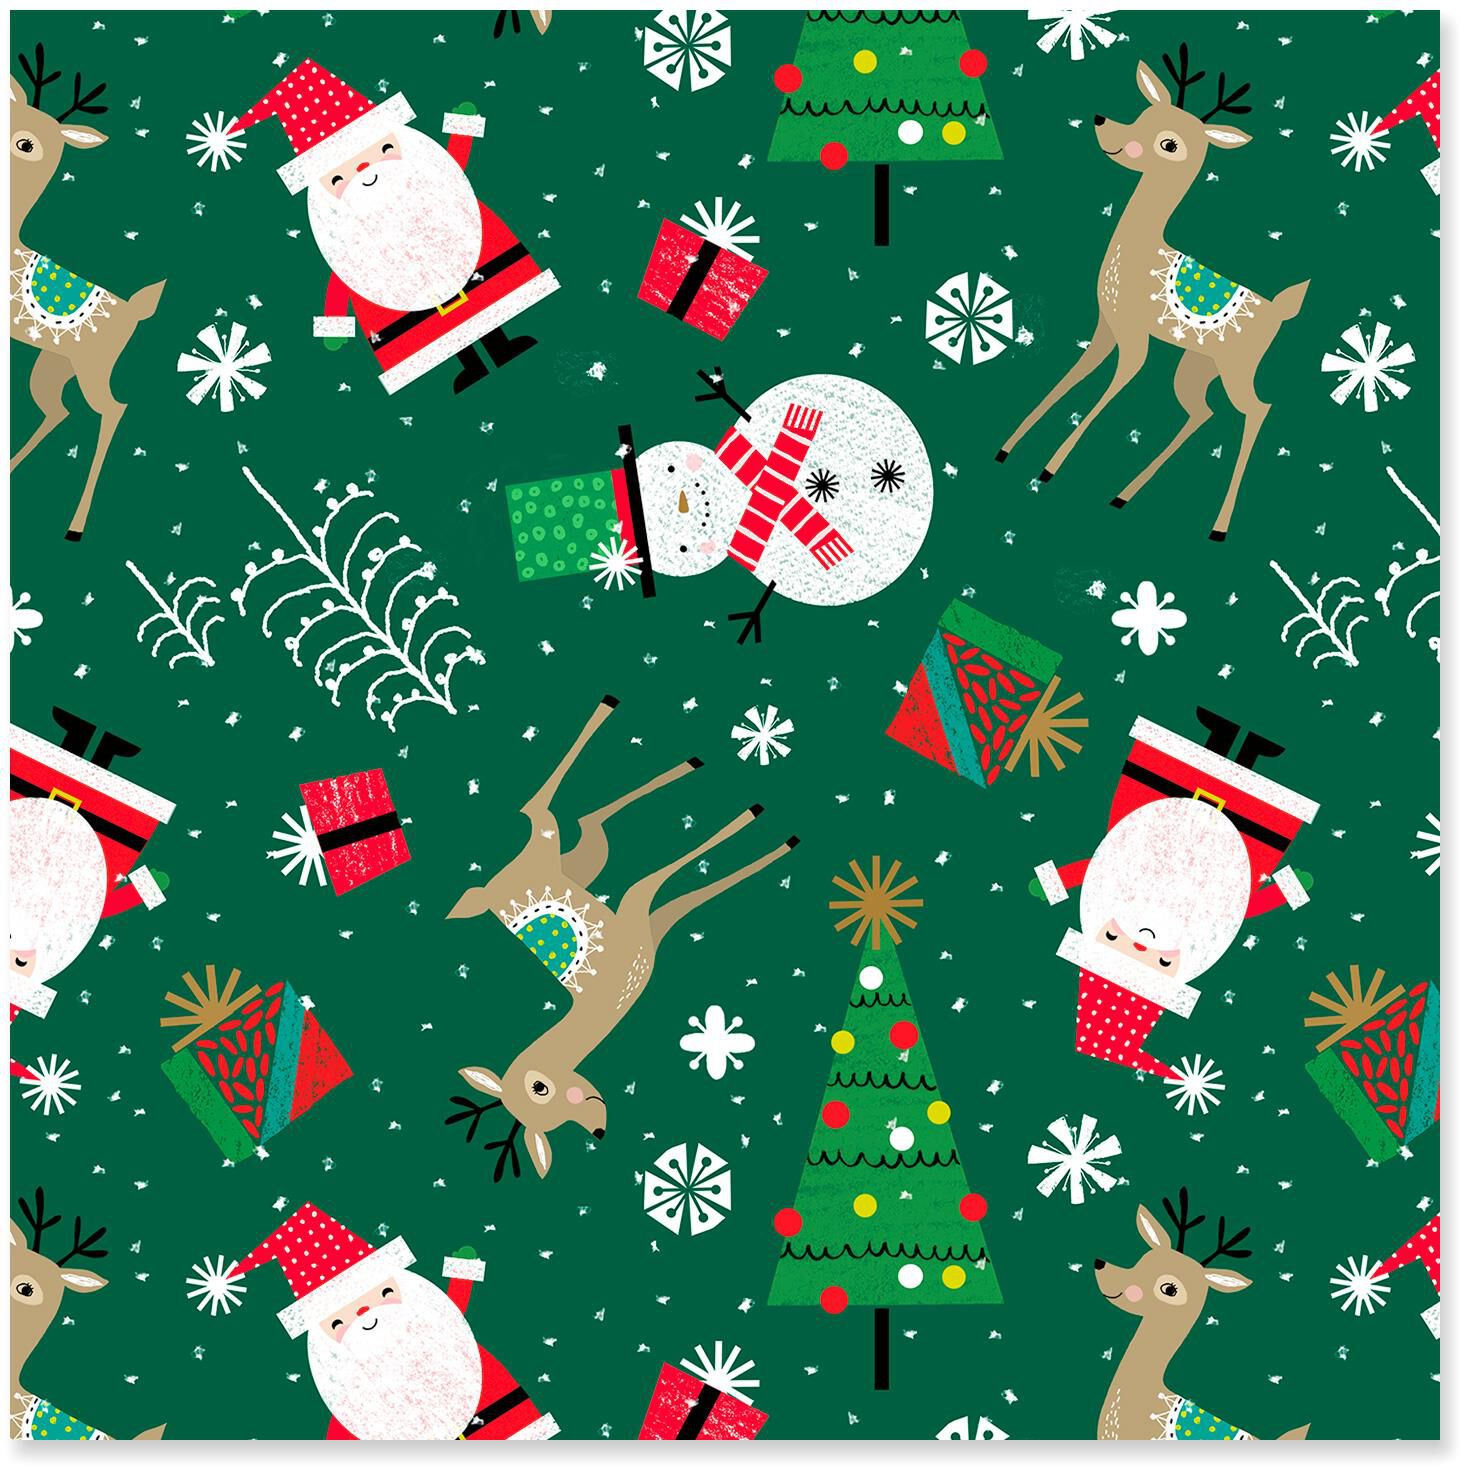 jumbo christmas wrapping paper roll wrapping paper hallmark - Cheap Christmas Wrapping Paper